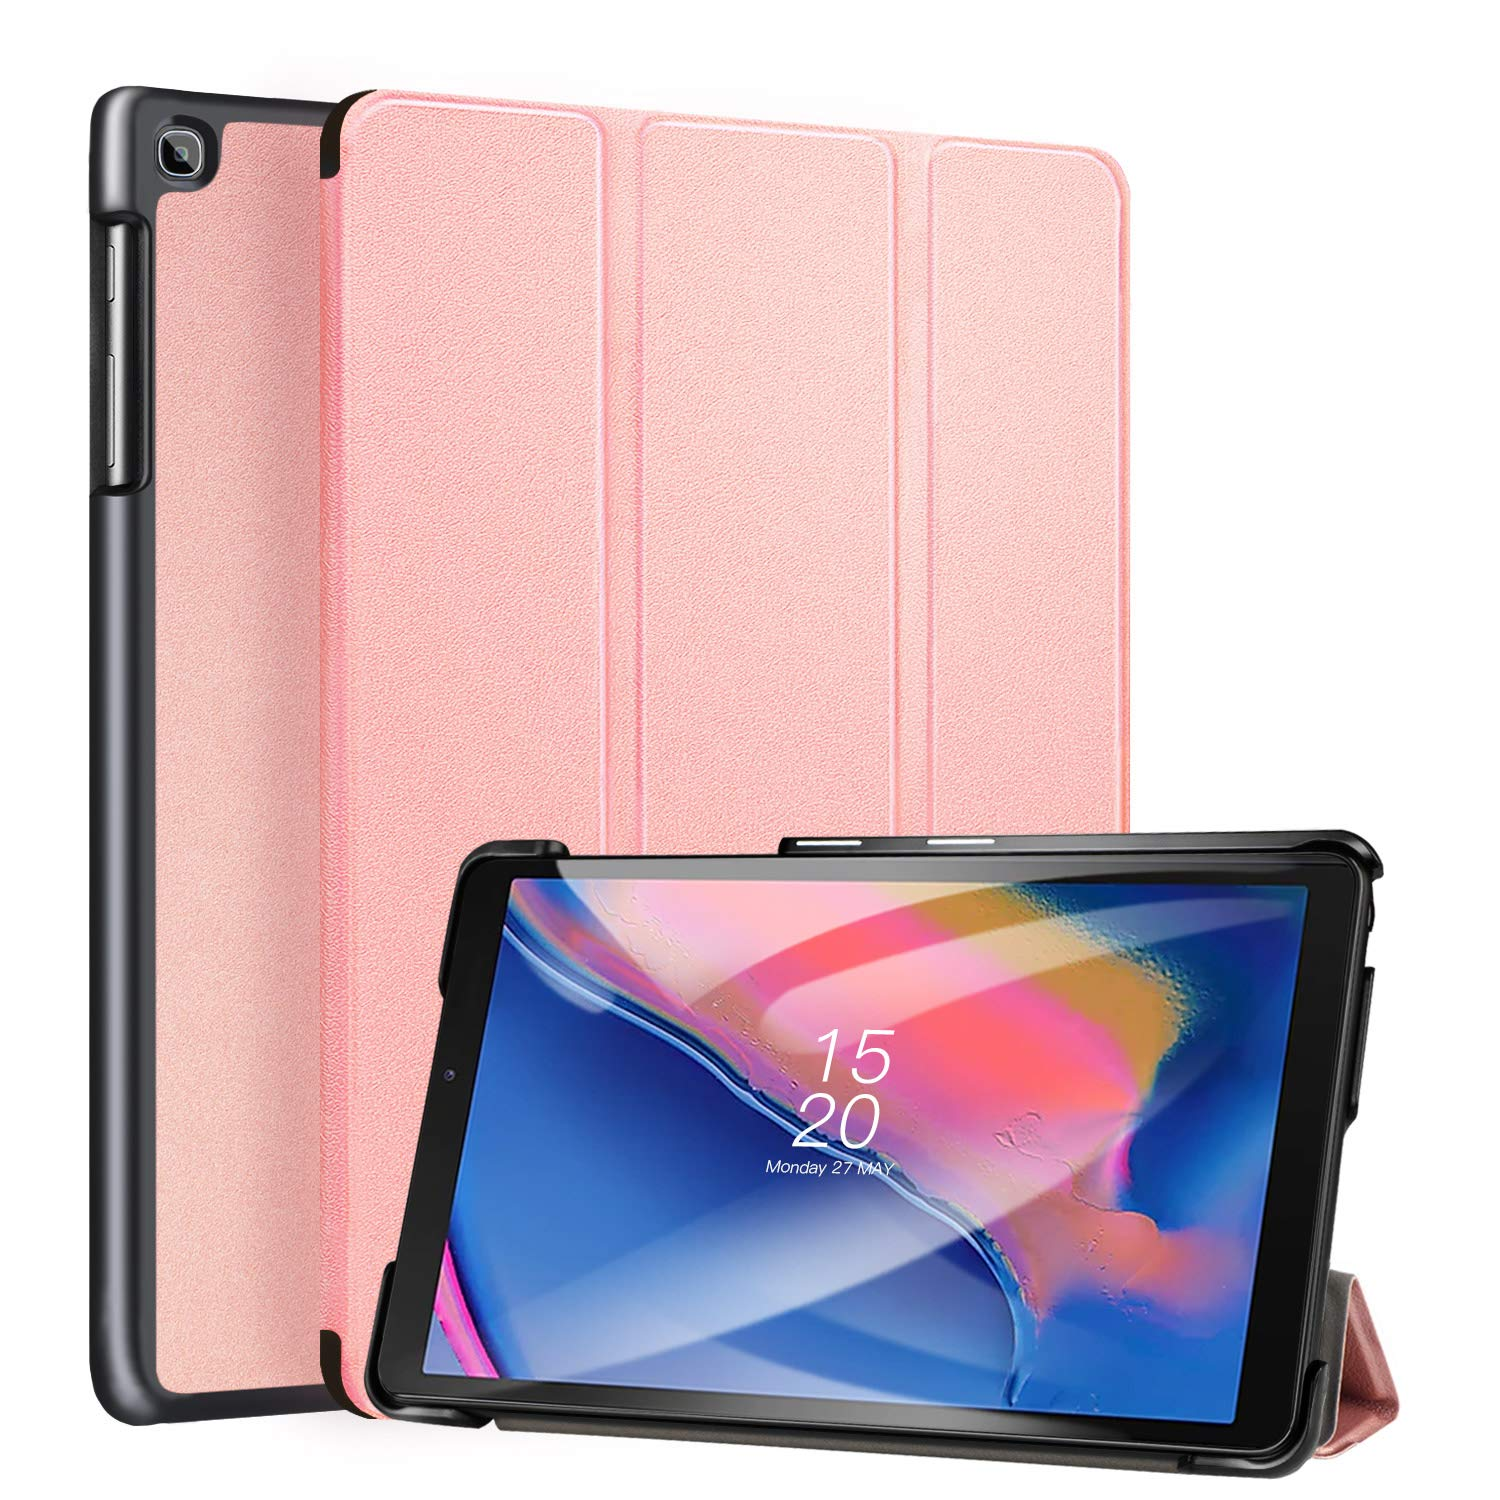 Ztotop Case for Samsung Galaxy Tab A 8.0 2019, Ultra Slim Lightweight Trifold Stand Cover Case for Samsung Tab A with S Pen 8.0 Inch Tablet SM-P200/SM-P205 2019 Release - Rosegold